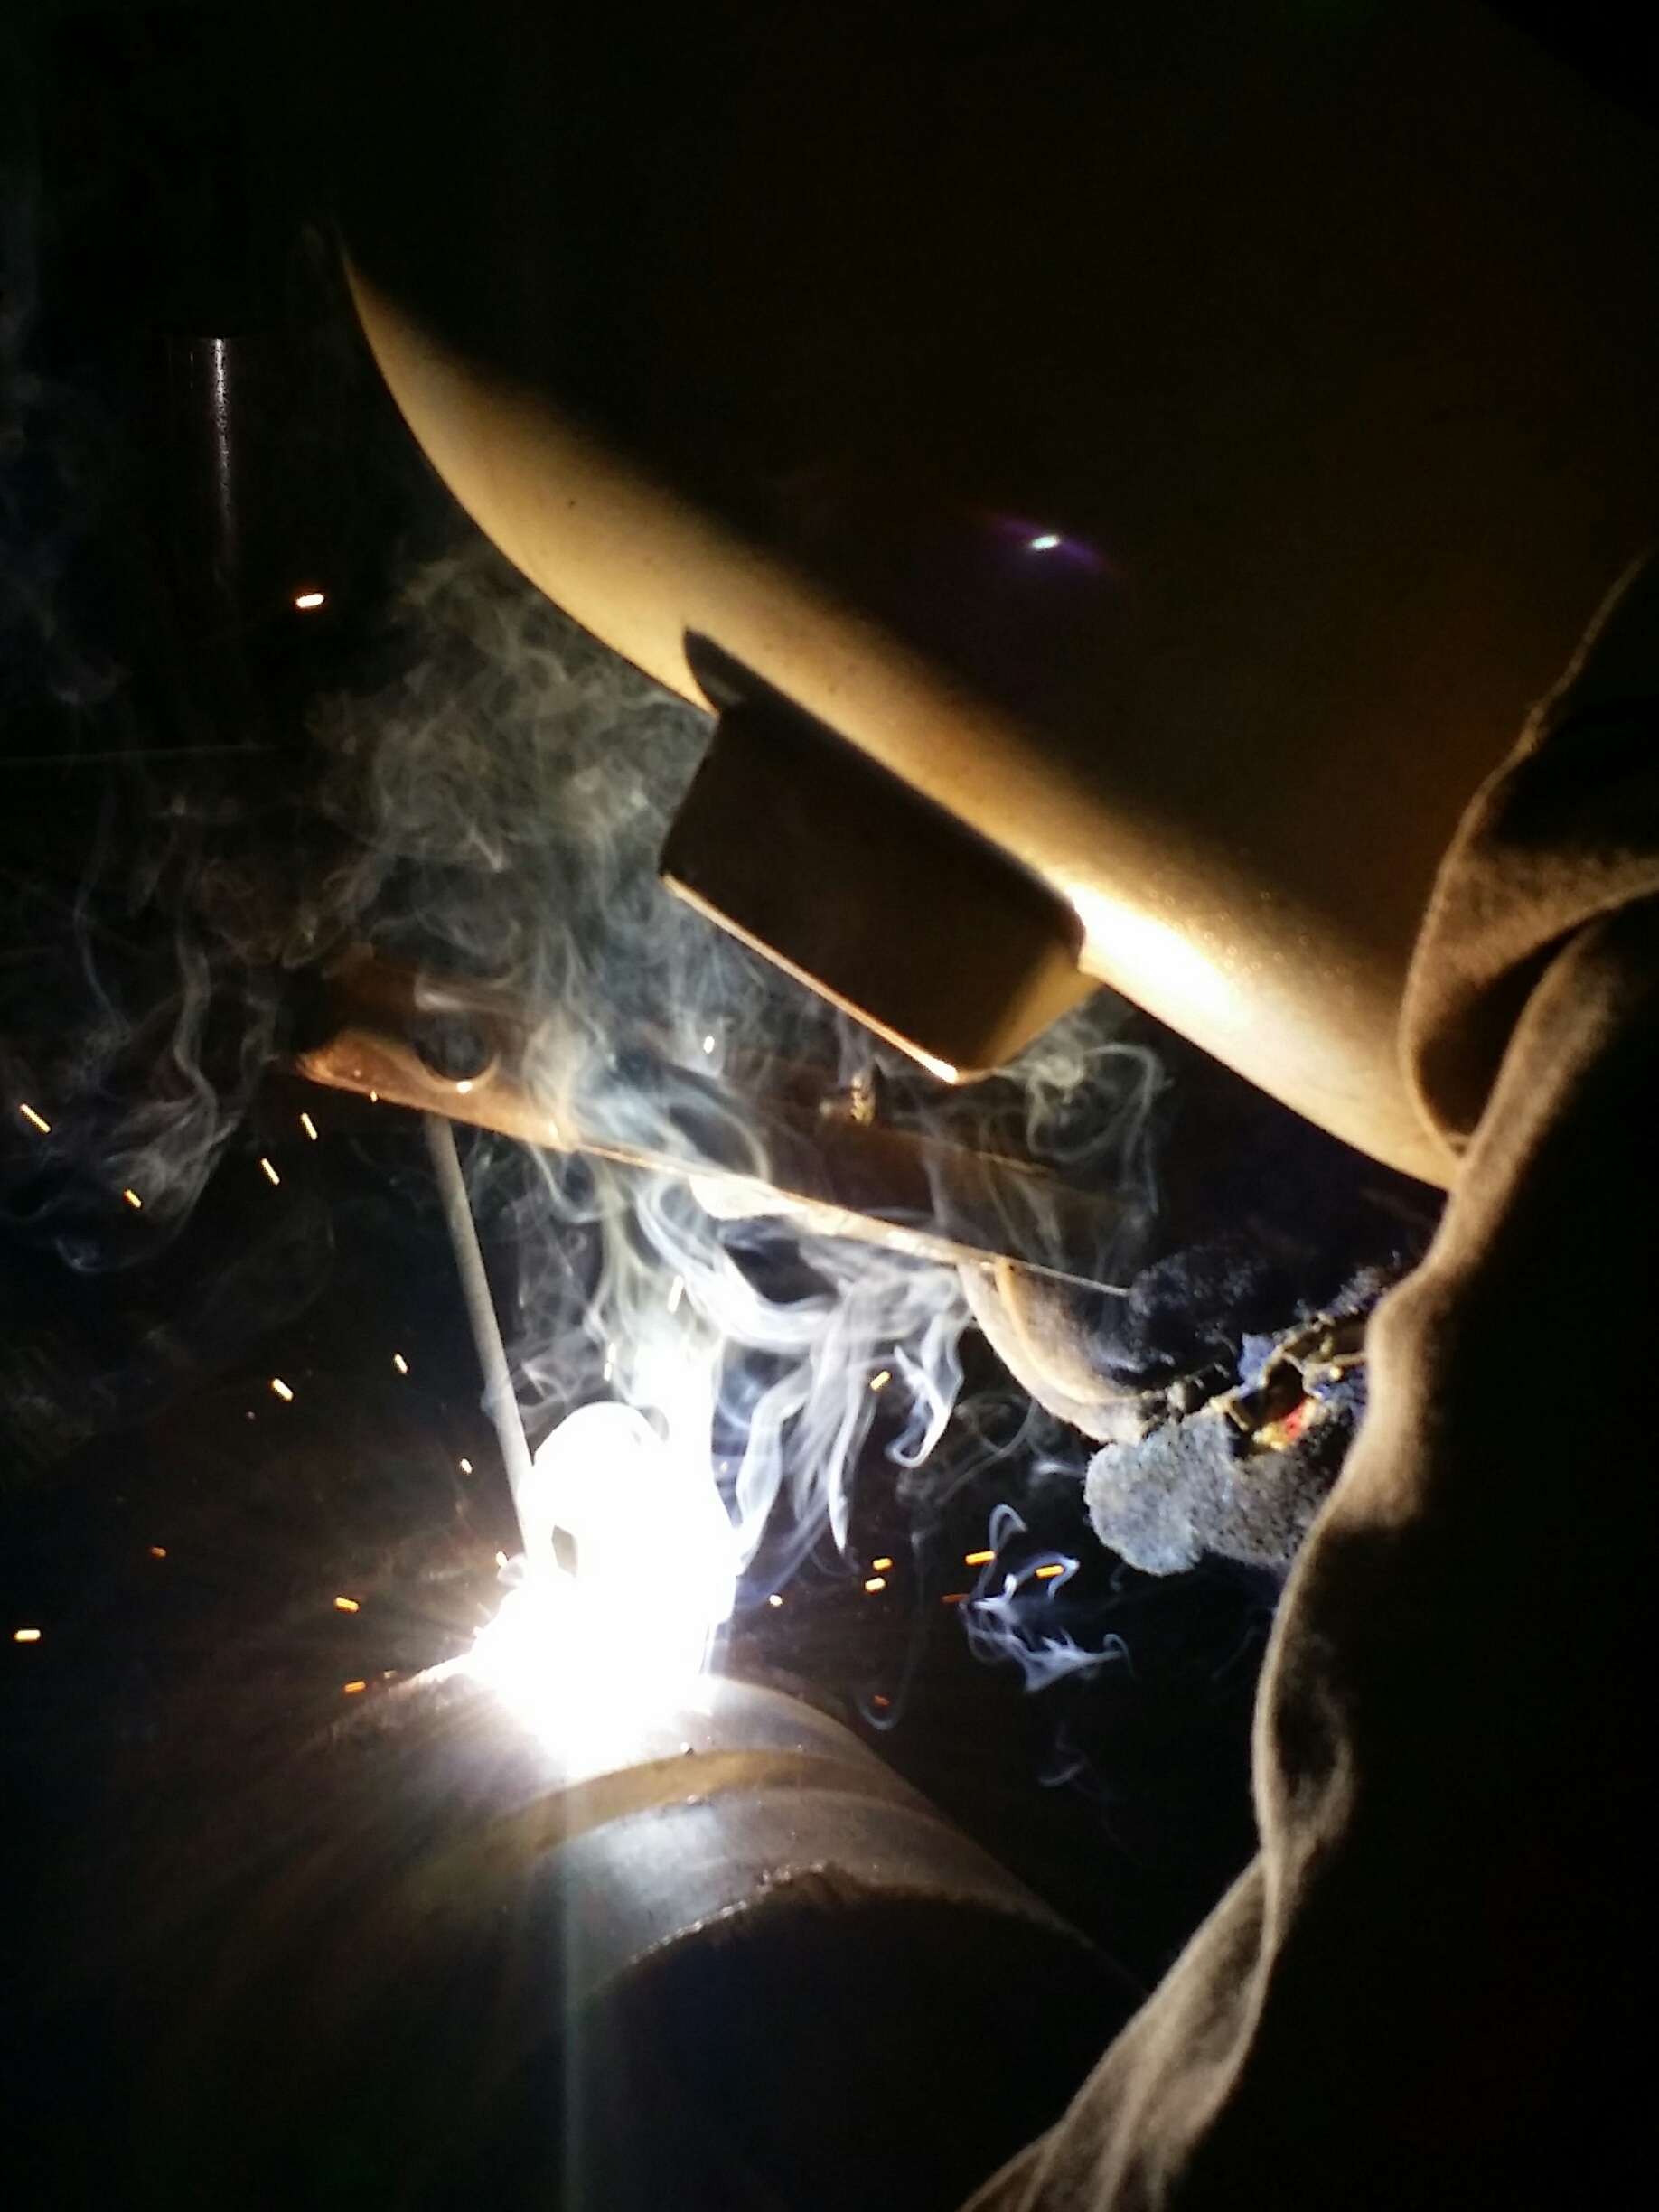 Image of a welder working on piping fixtures